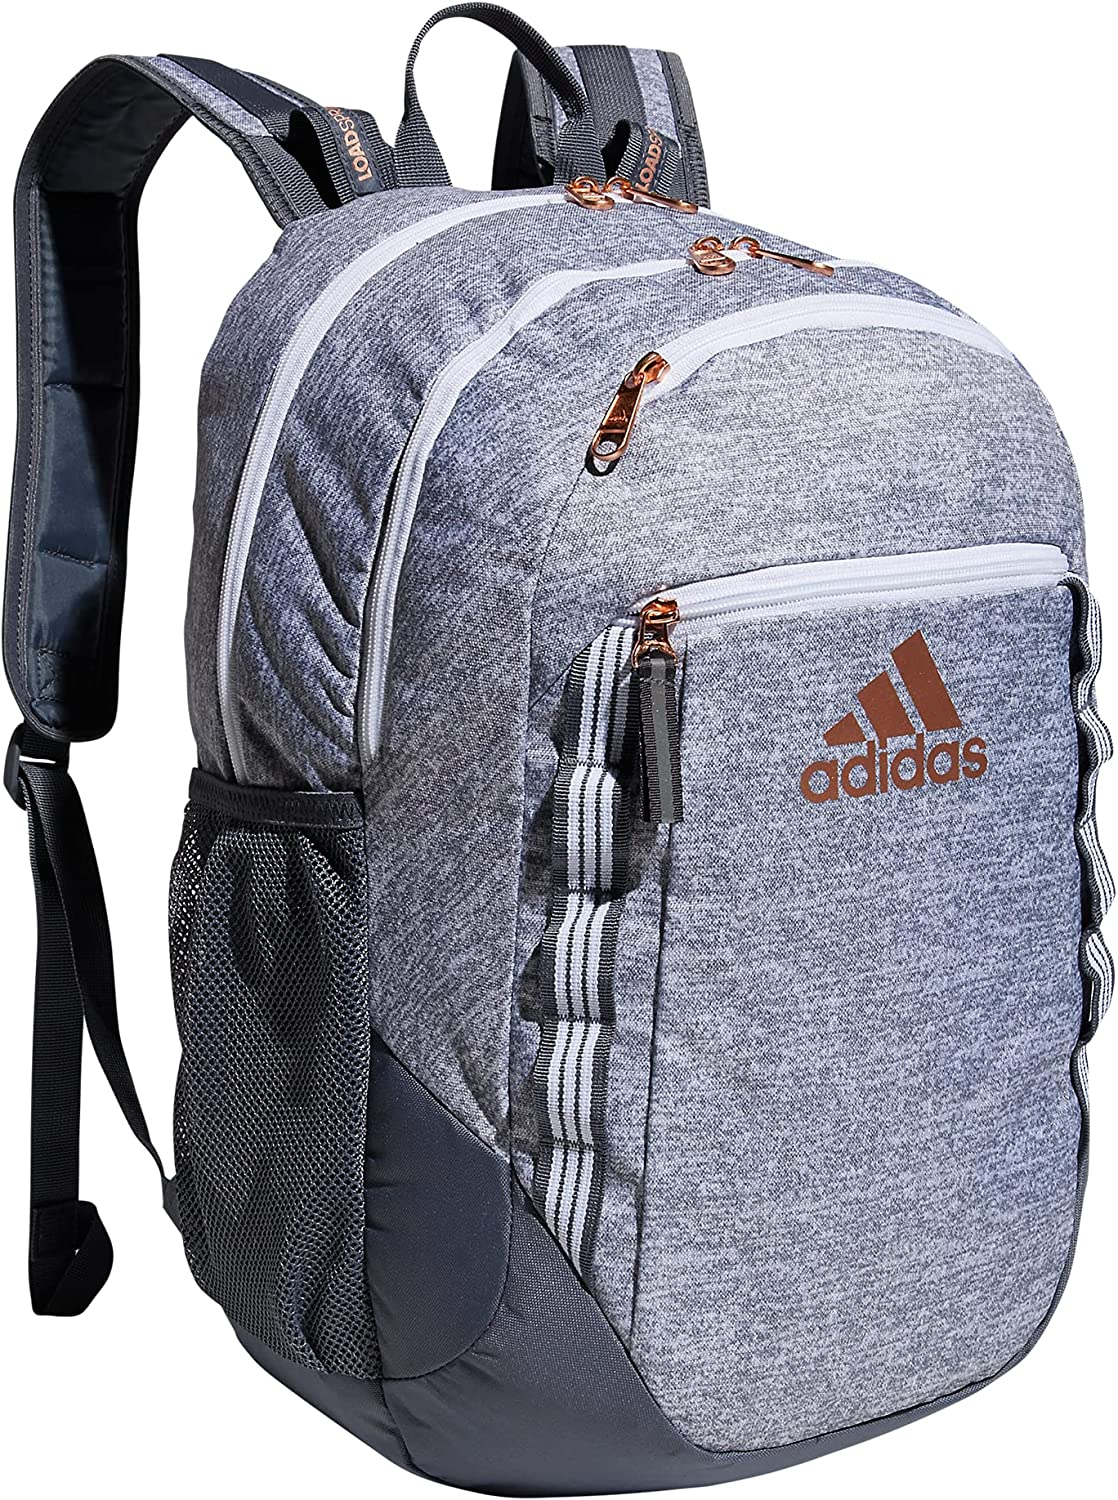 adidas Excel 6 Backpack, Jersey Grey/Onix Grey/Rose Gold, One Size